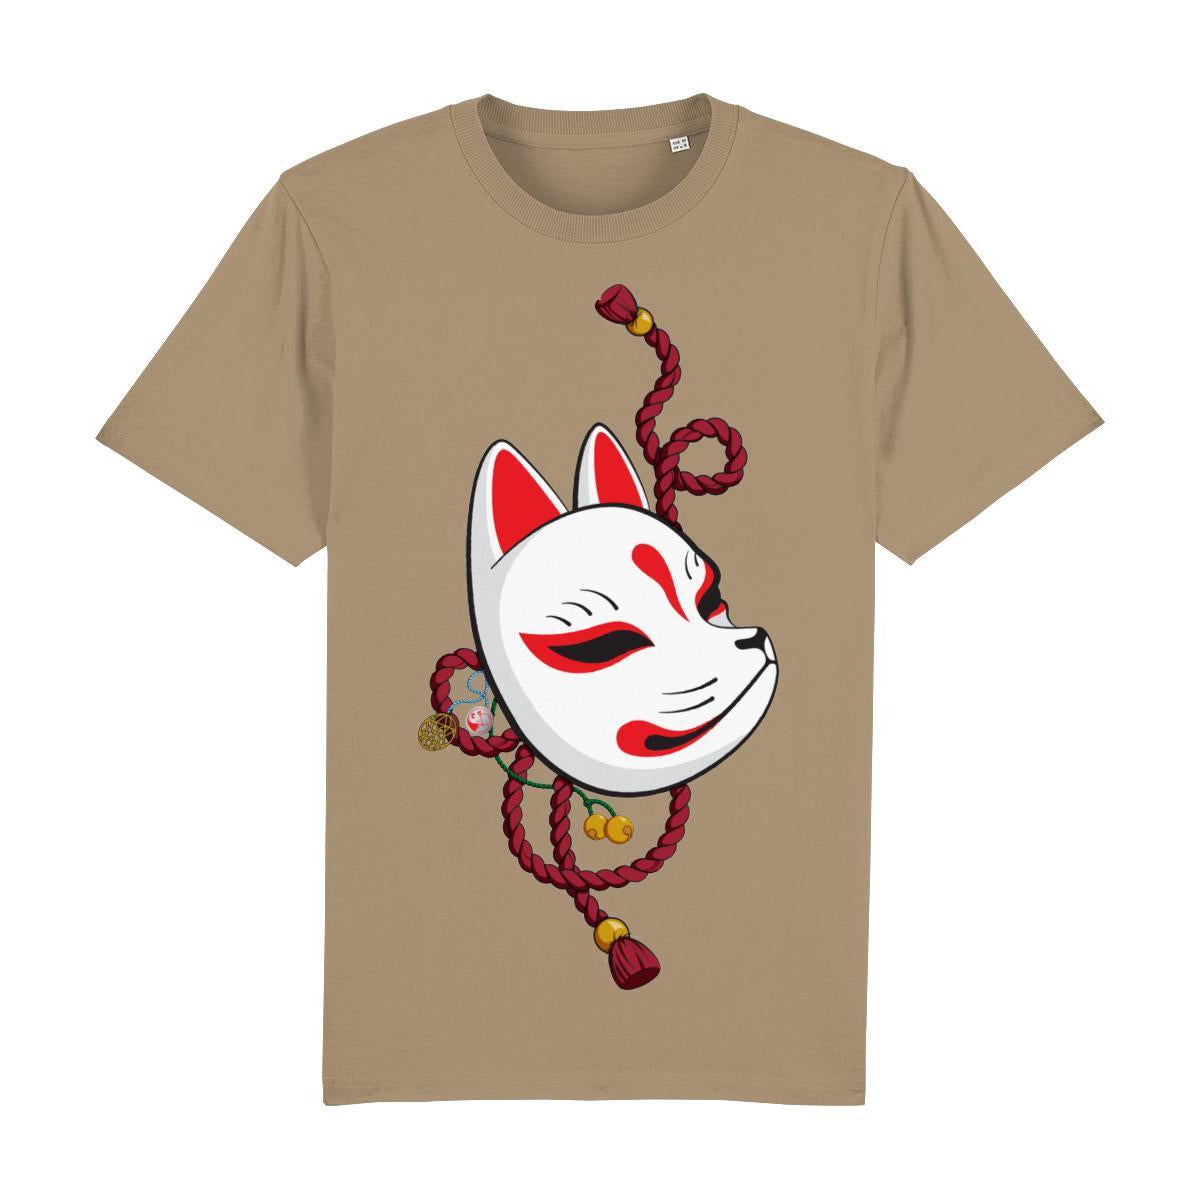 Kitsune Mask Front Print-Clothing-Kitsune Clothing UK Ltd